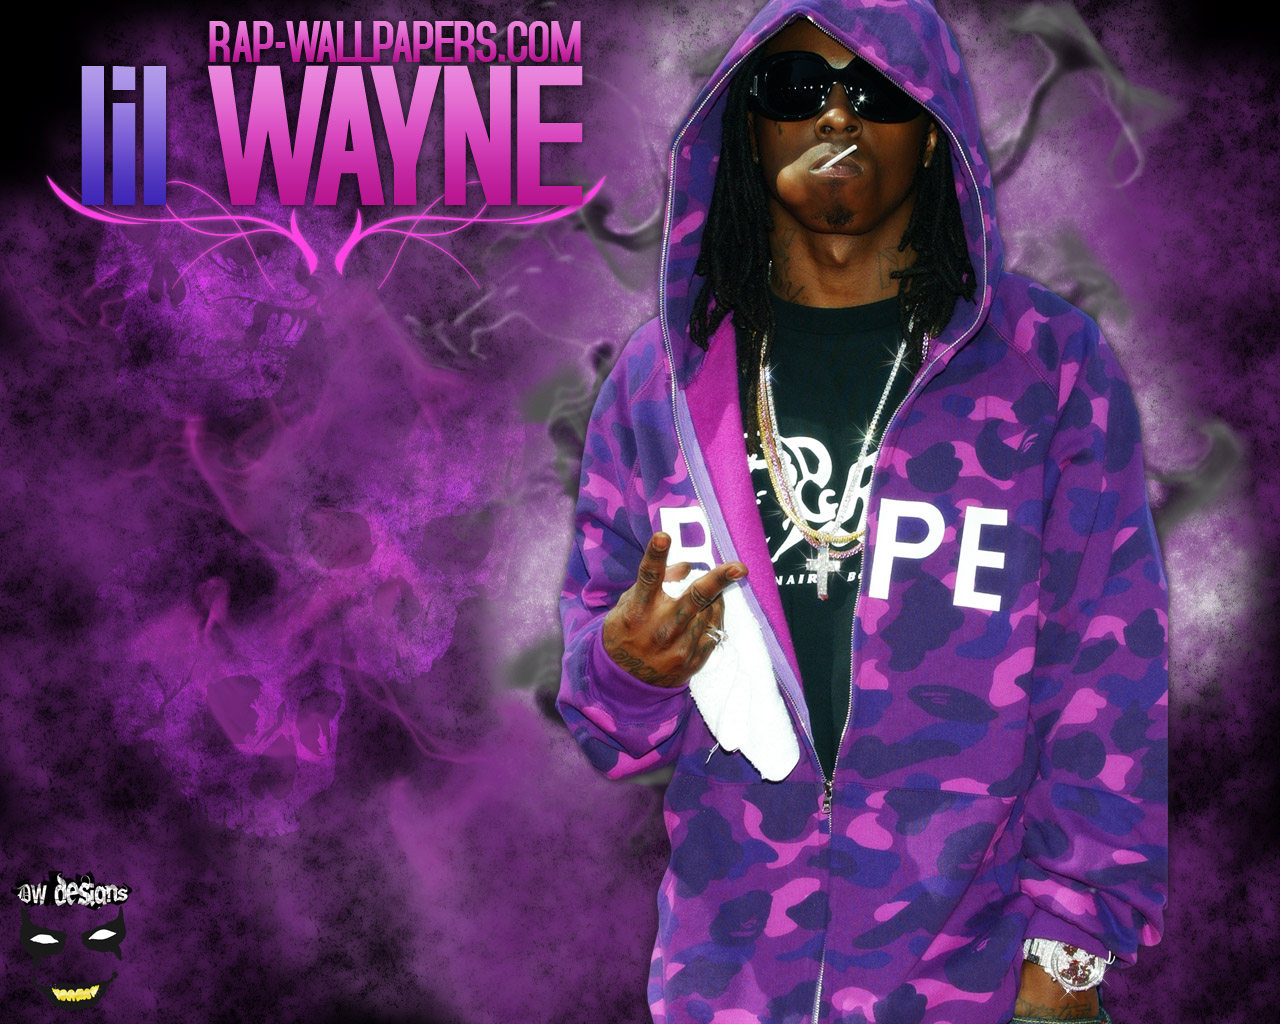 Hd Wallpapers Cool Lil Wayne Picture 1280x1024 Download Hd Wallpaper Wallpapertip